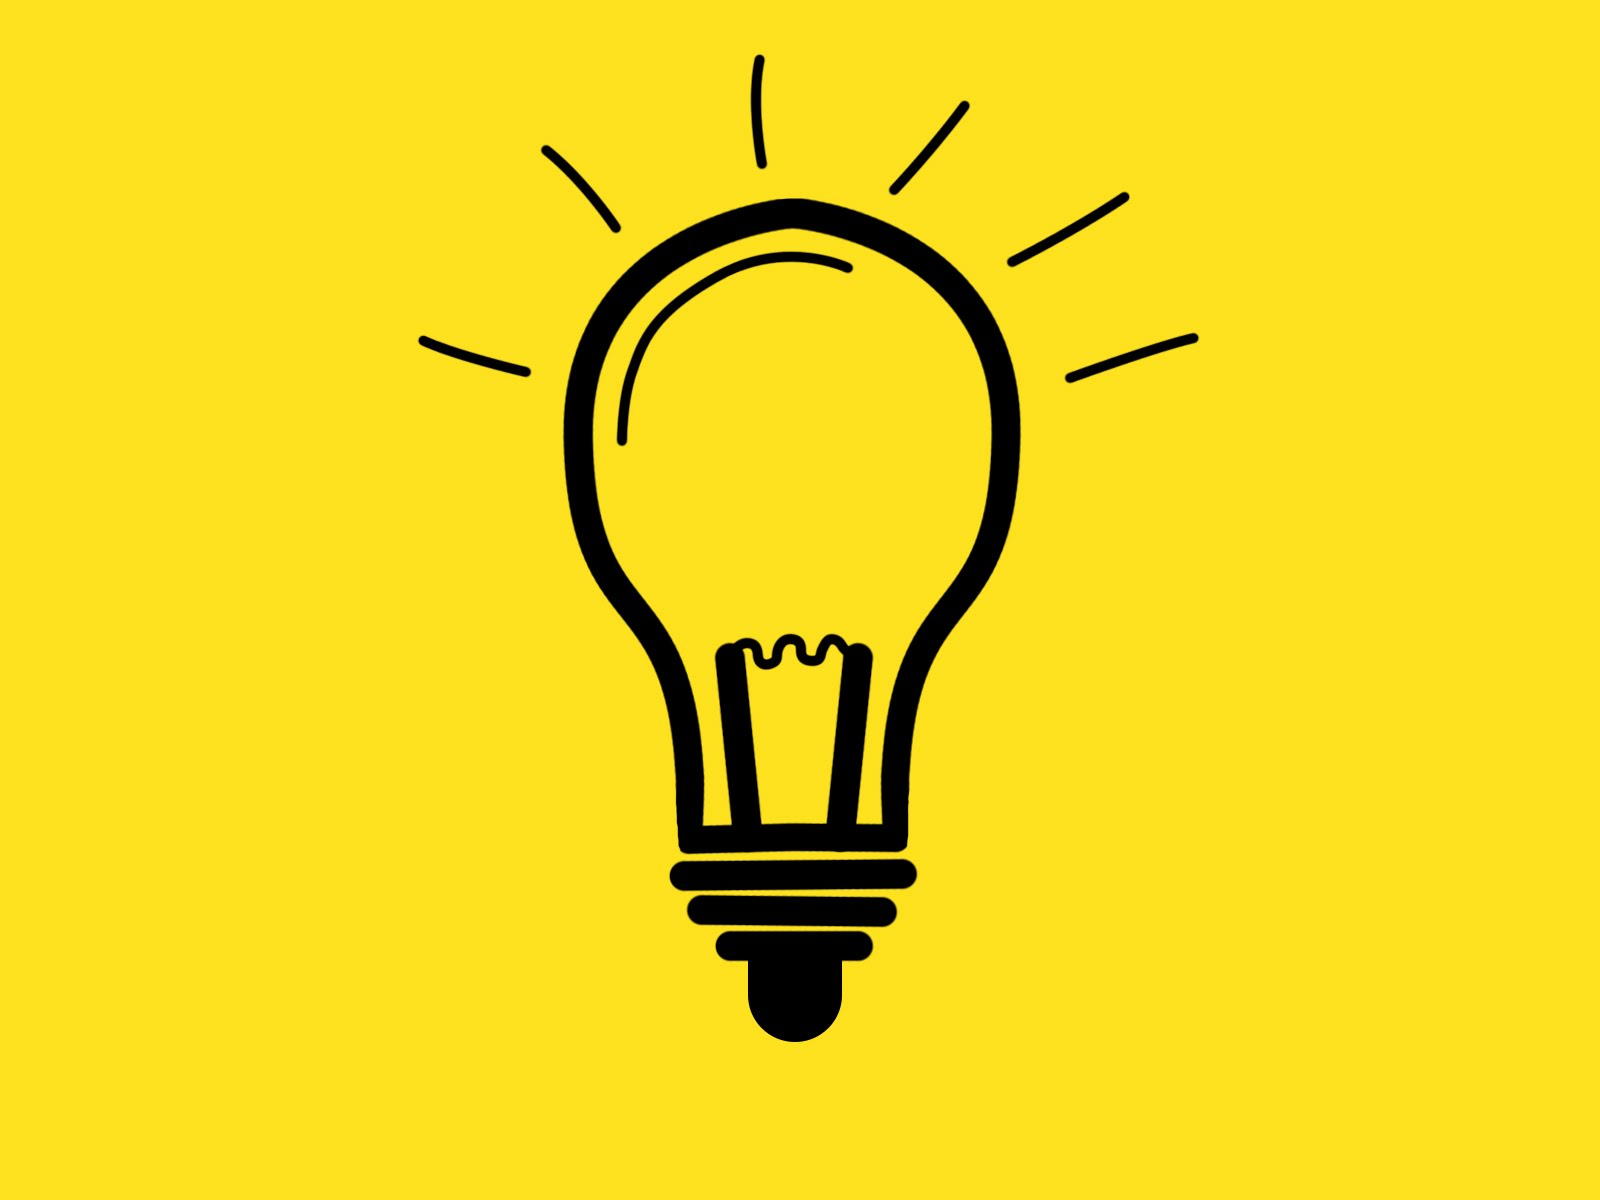 Clip art Tutorial : How to make bulb clipart in Photoshop.